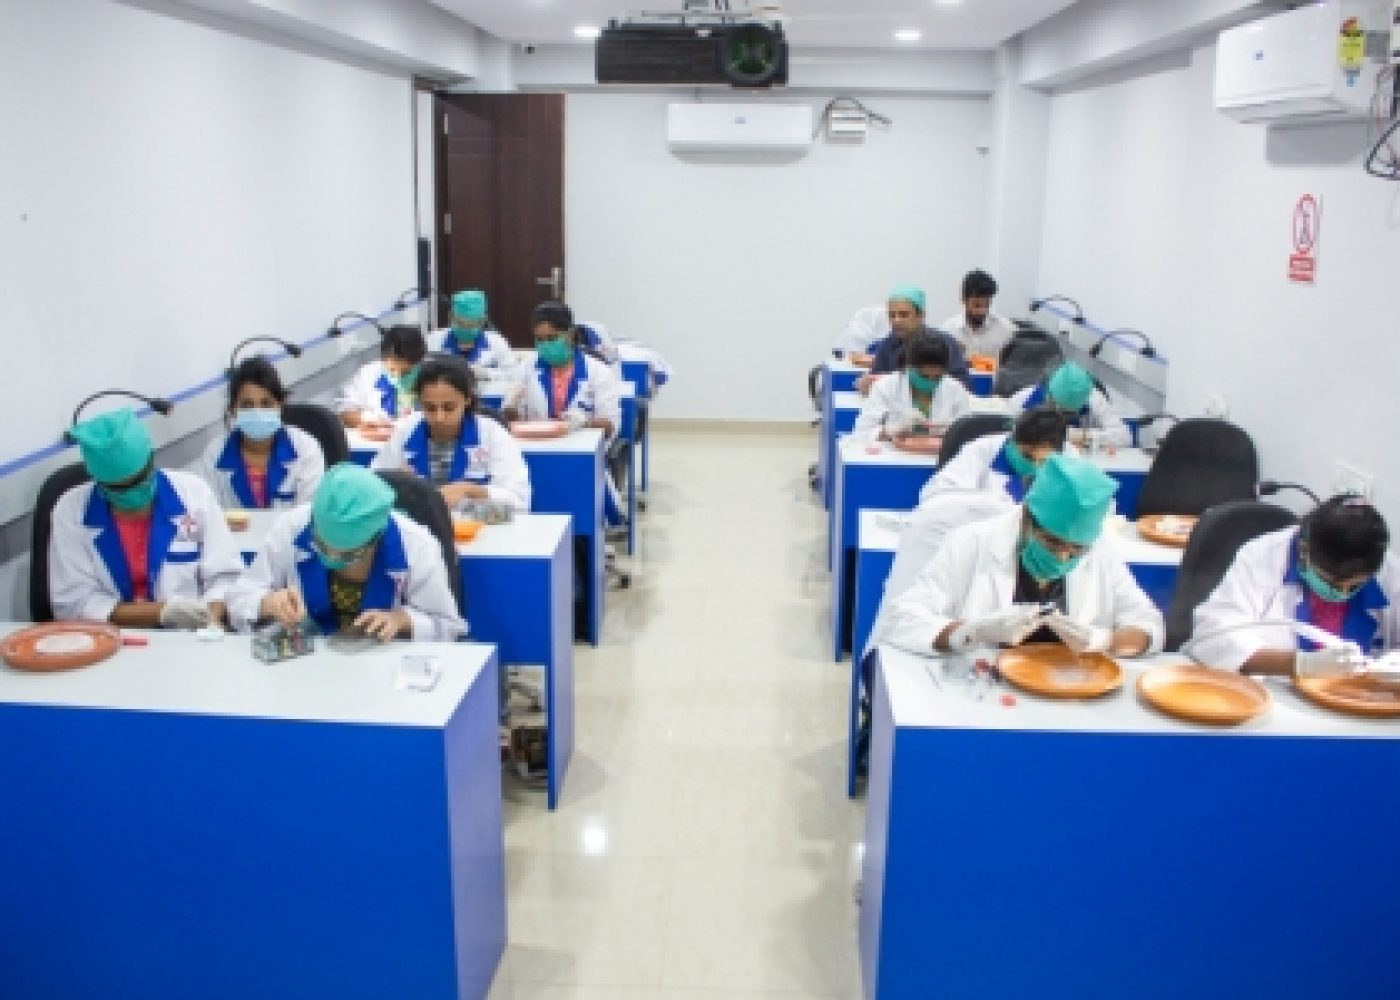 asian_dental lecture hall